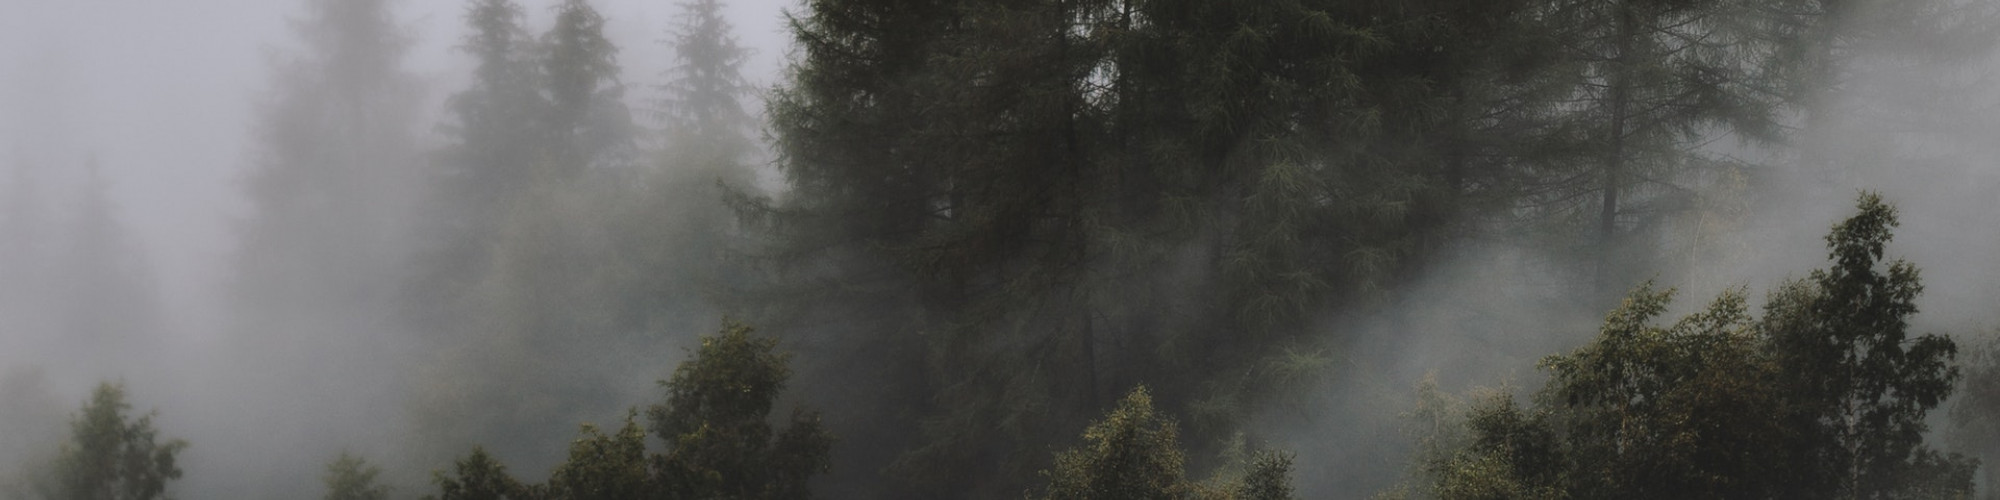 photo-of-foggy-forest-1367192